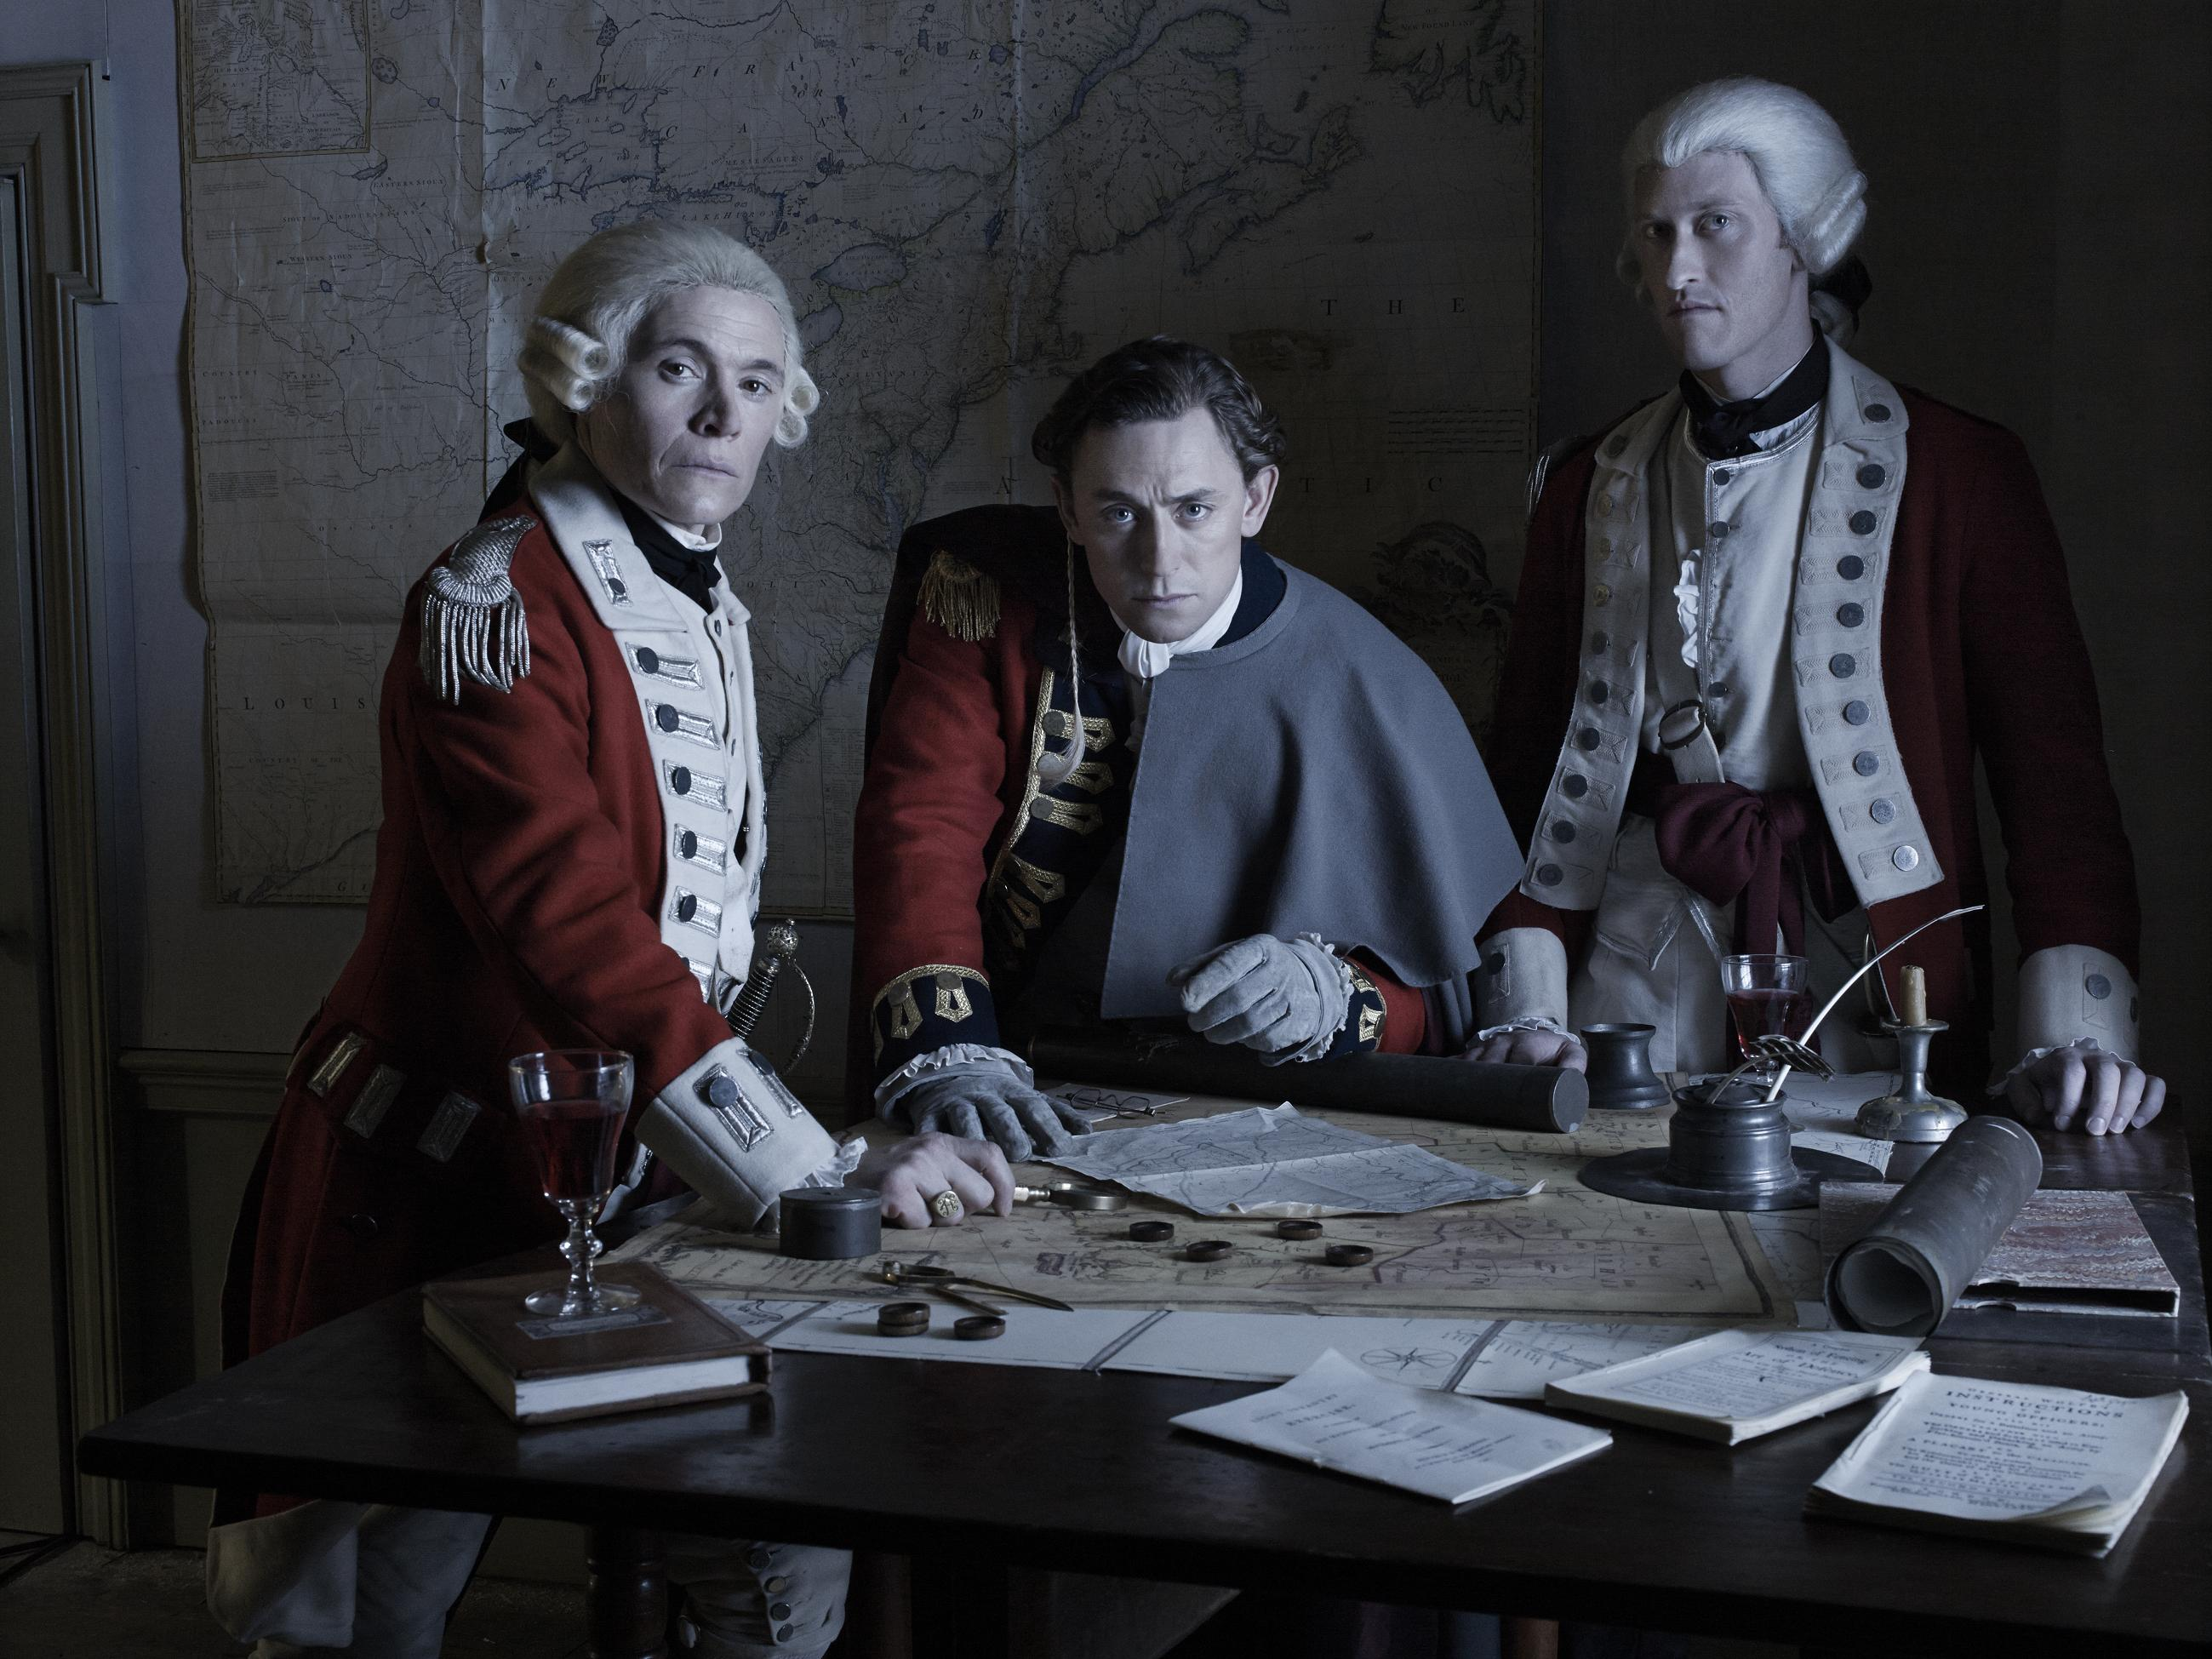 Valley forge american revolution